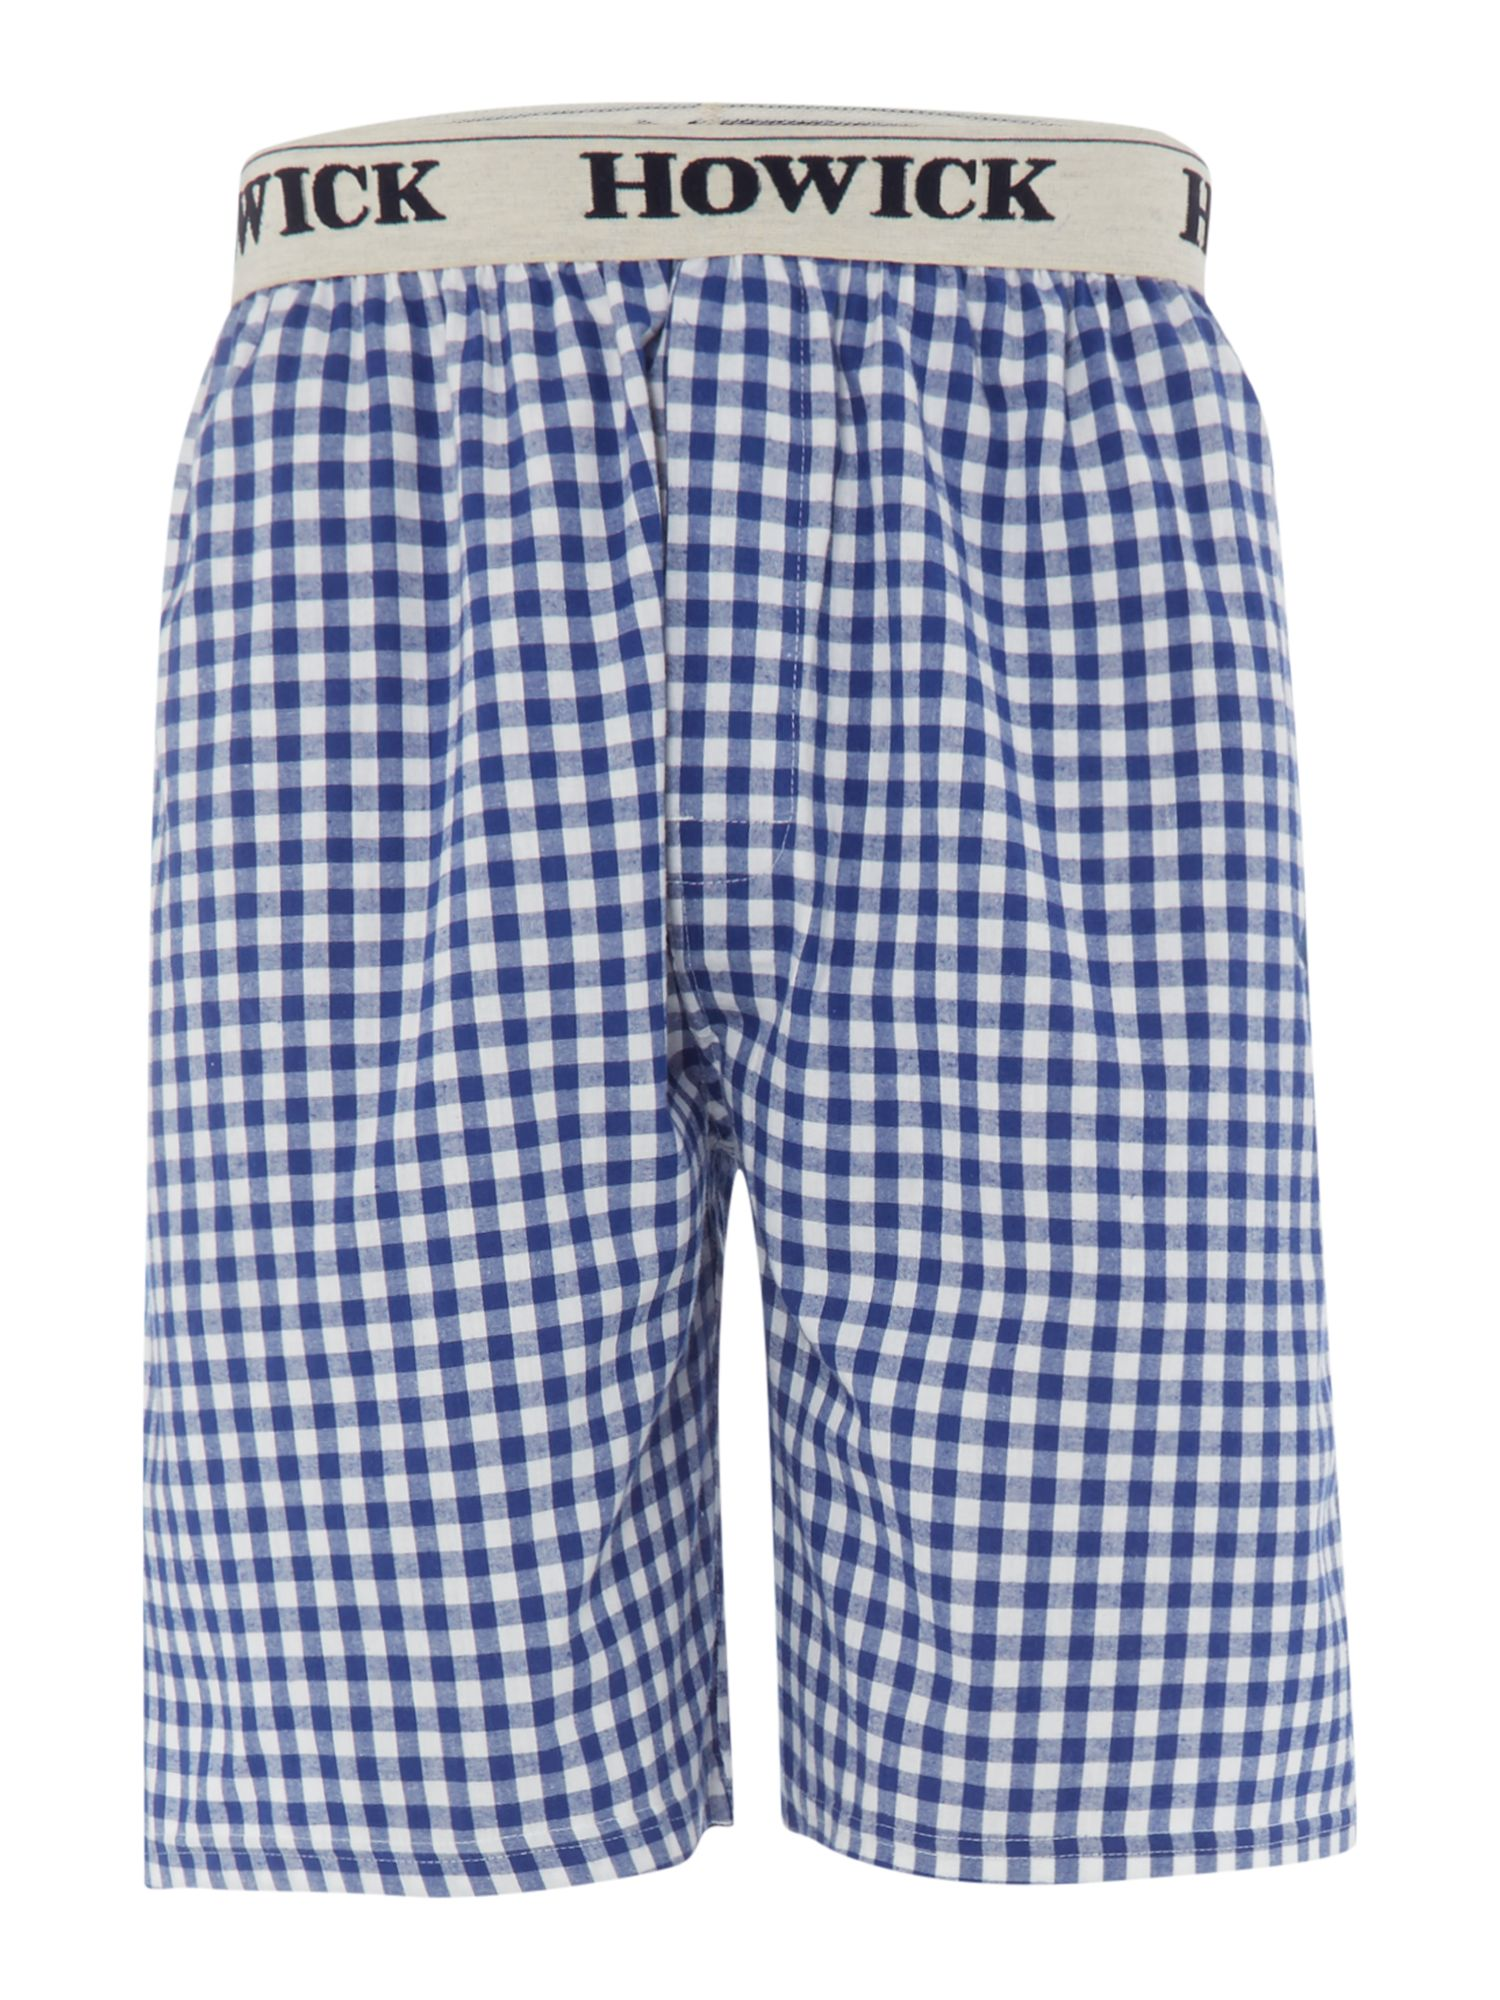 Gingham check sleep short